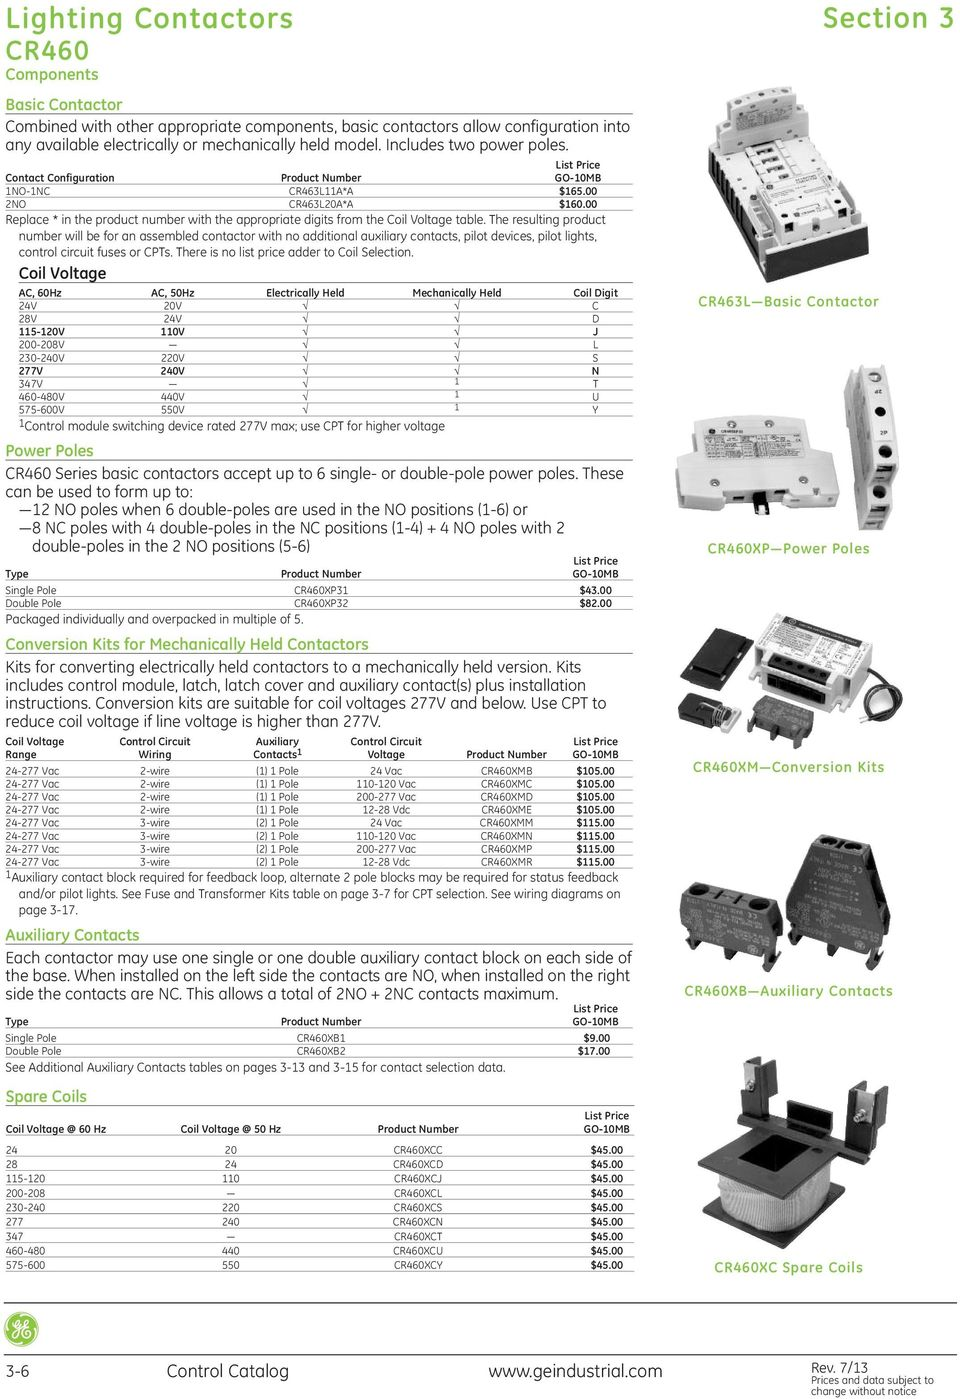 Contents Check Out This Useful Selection Tool On The Web Select A Chassis Branch Circuit Diagram For 208 Vac 20 Amp 3wire 1phase U Resulting Product Number Will Be An Assembled Contactor With No Additional Auxiliary Contacts